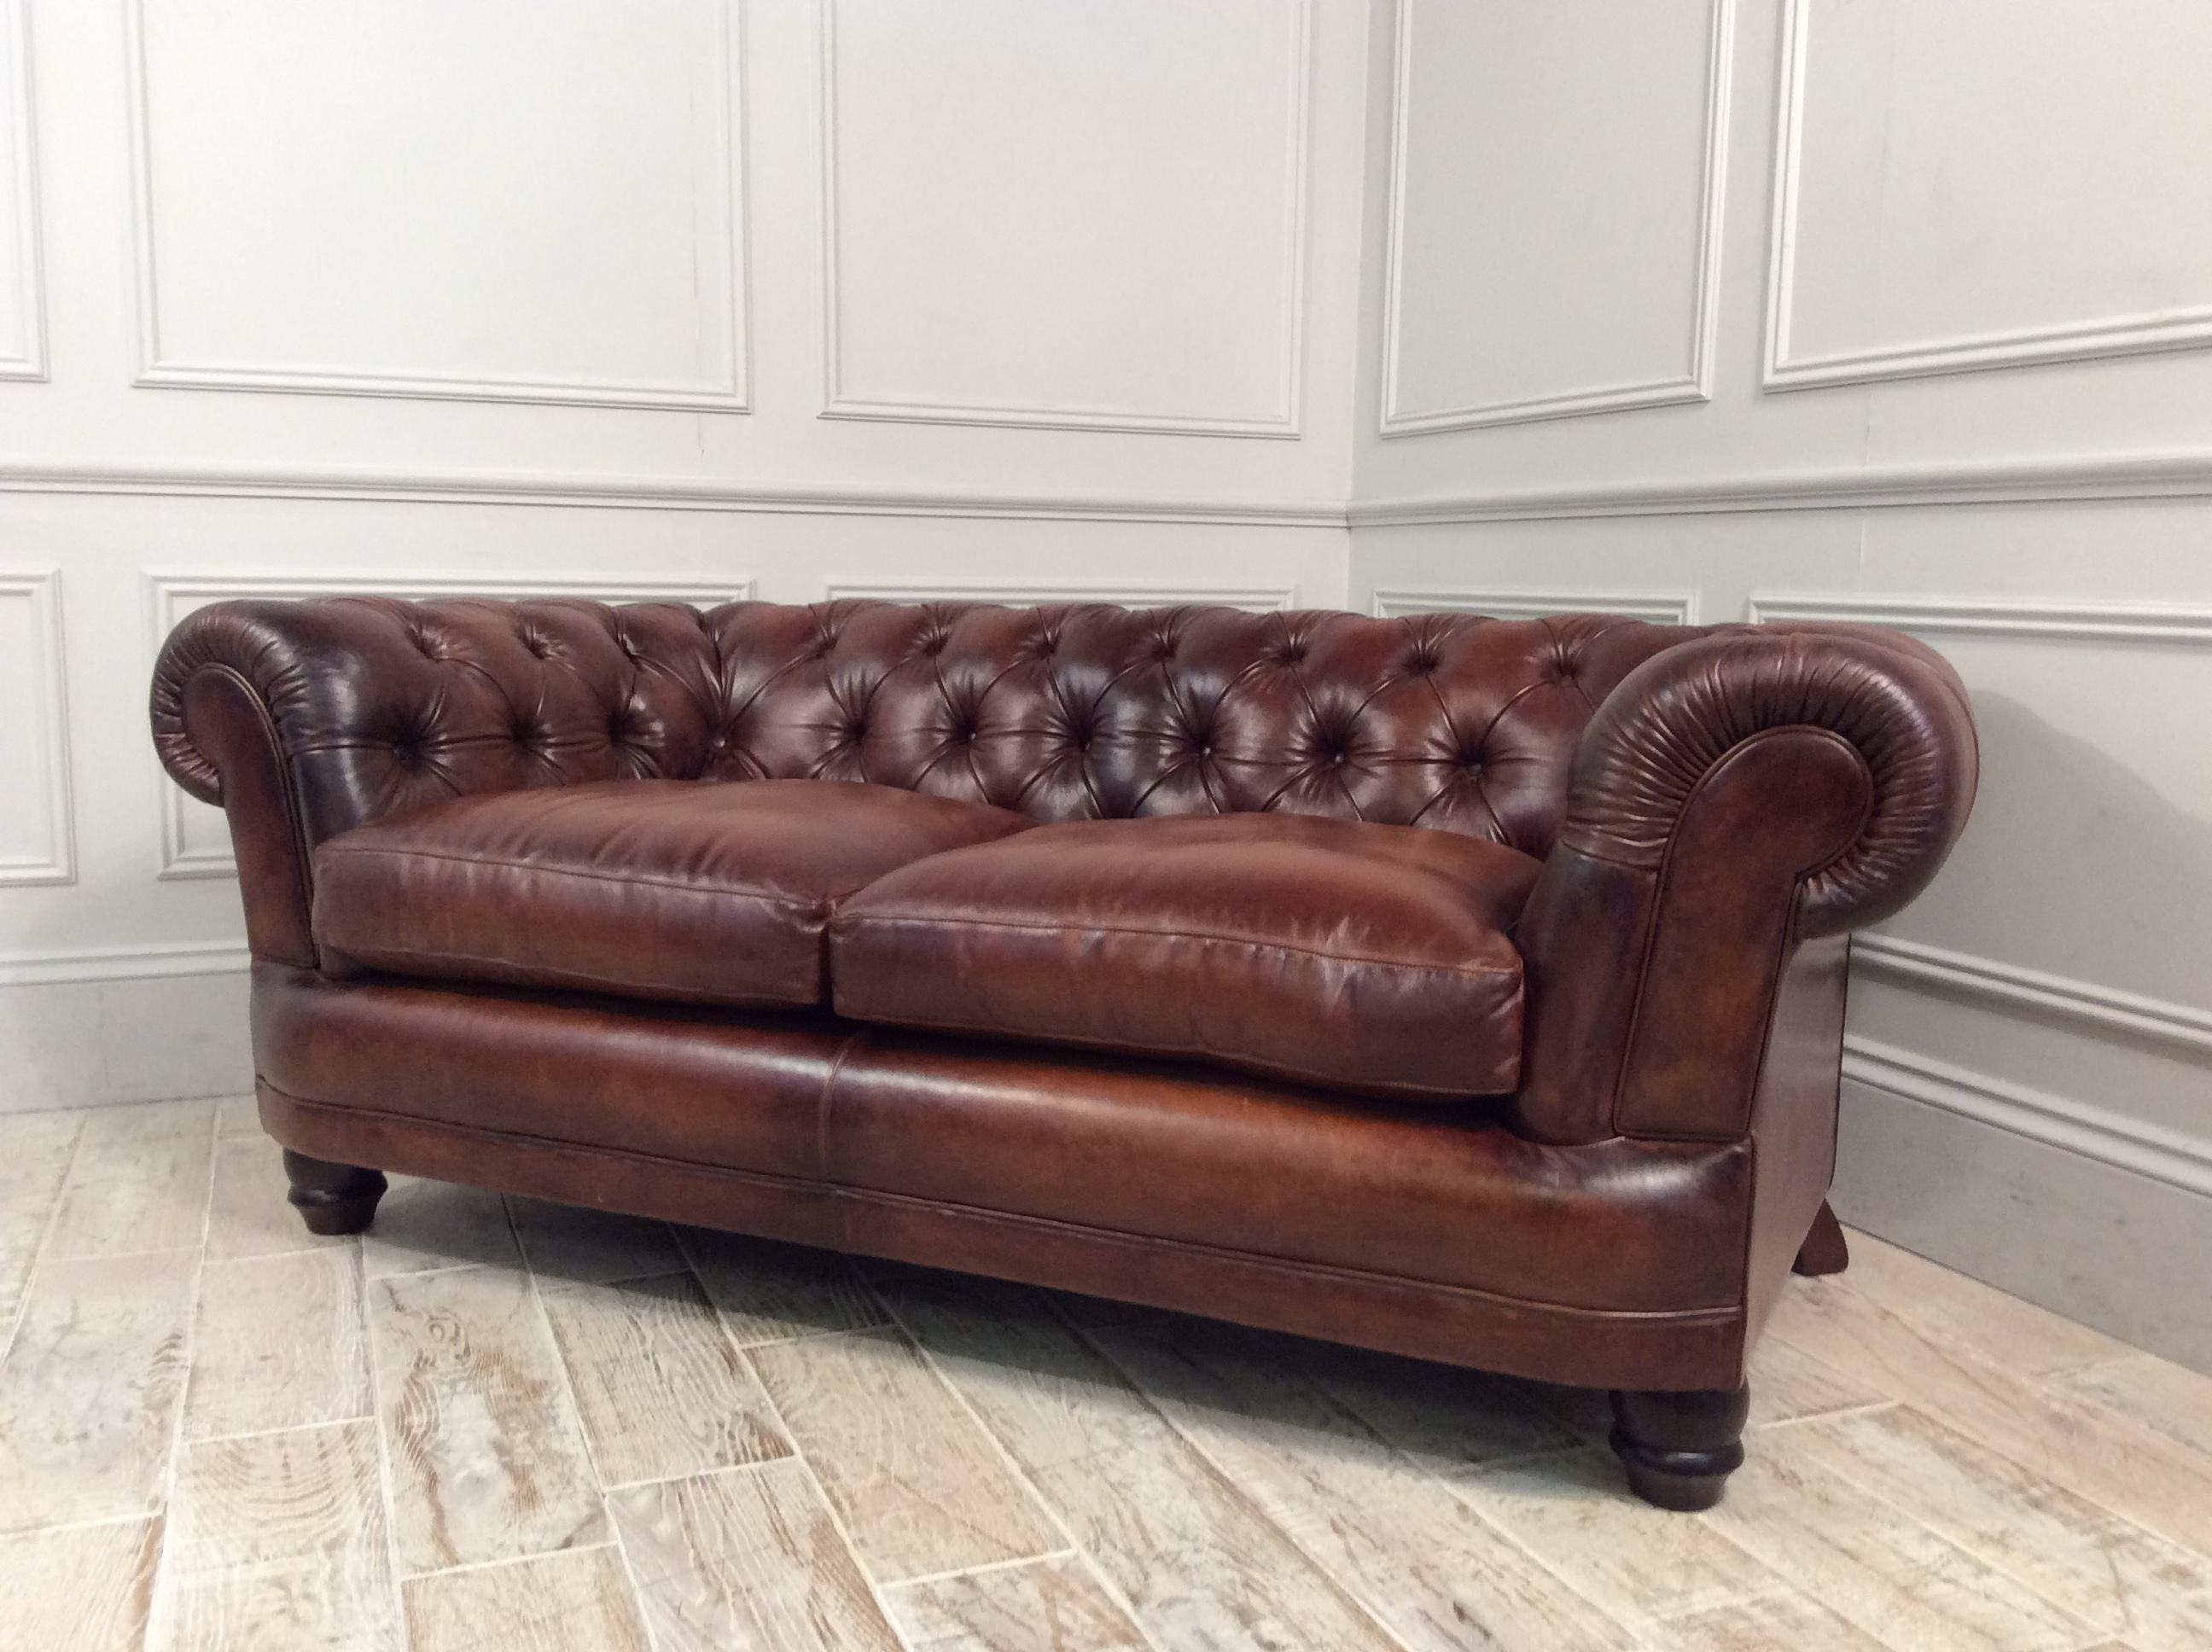 Cairness Midi Sofa in Hand Antiqued Leather